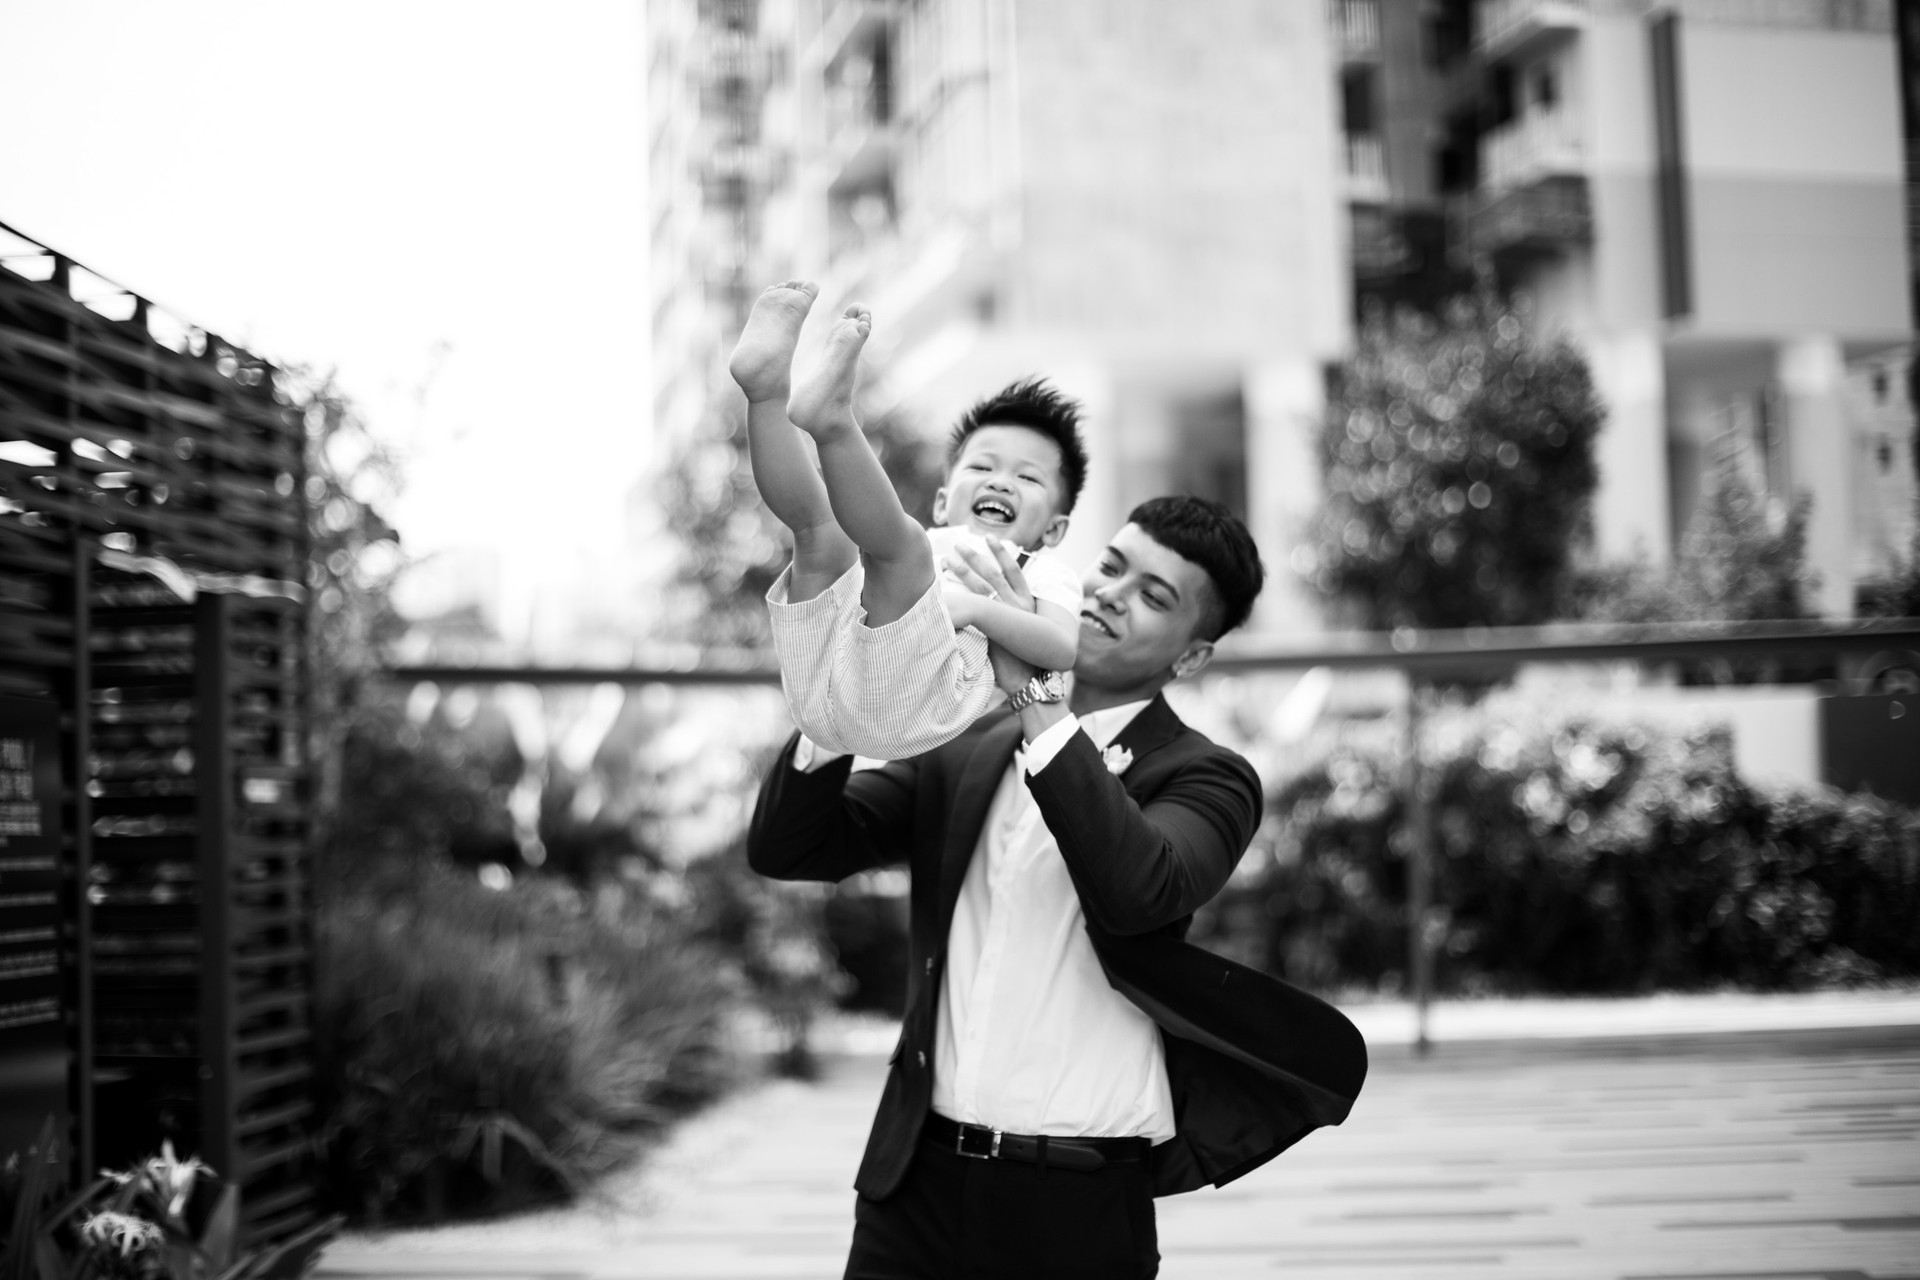 boonheng and jessica-88.jpg